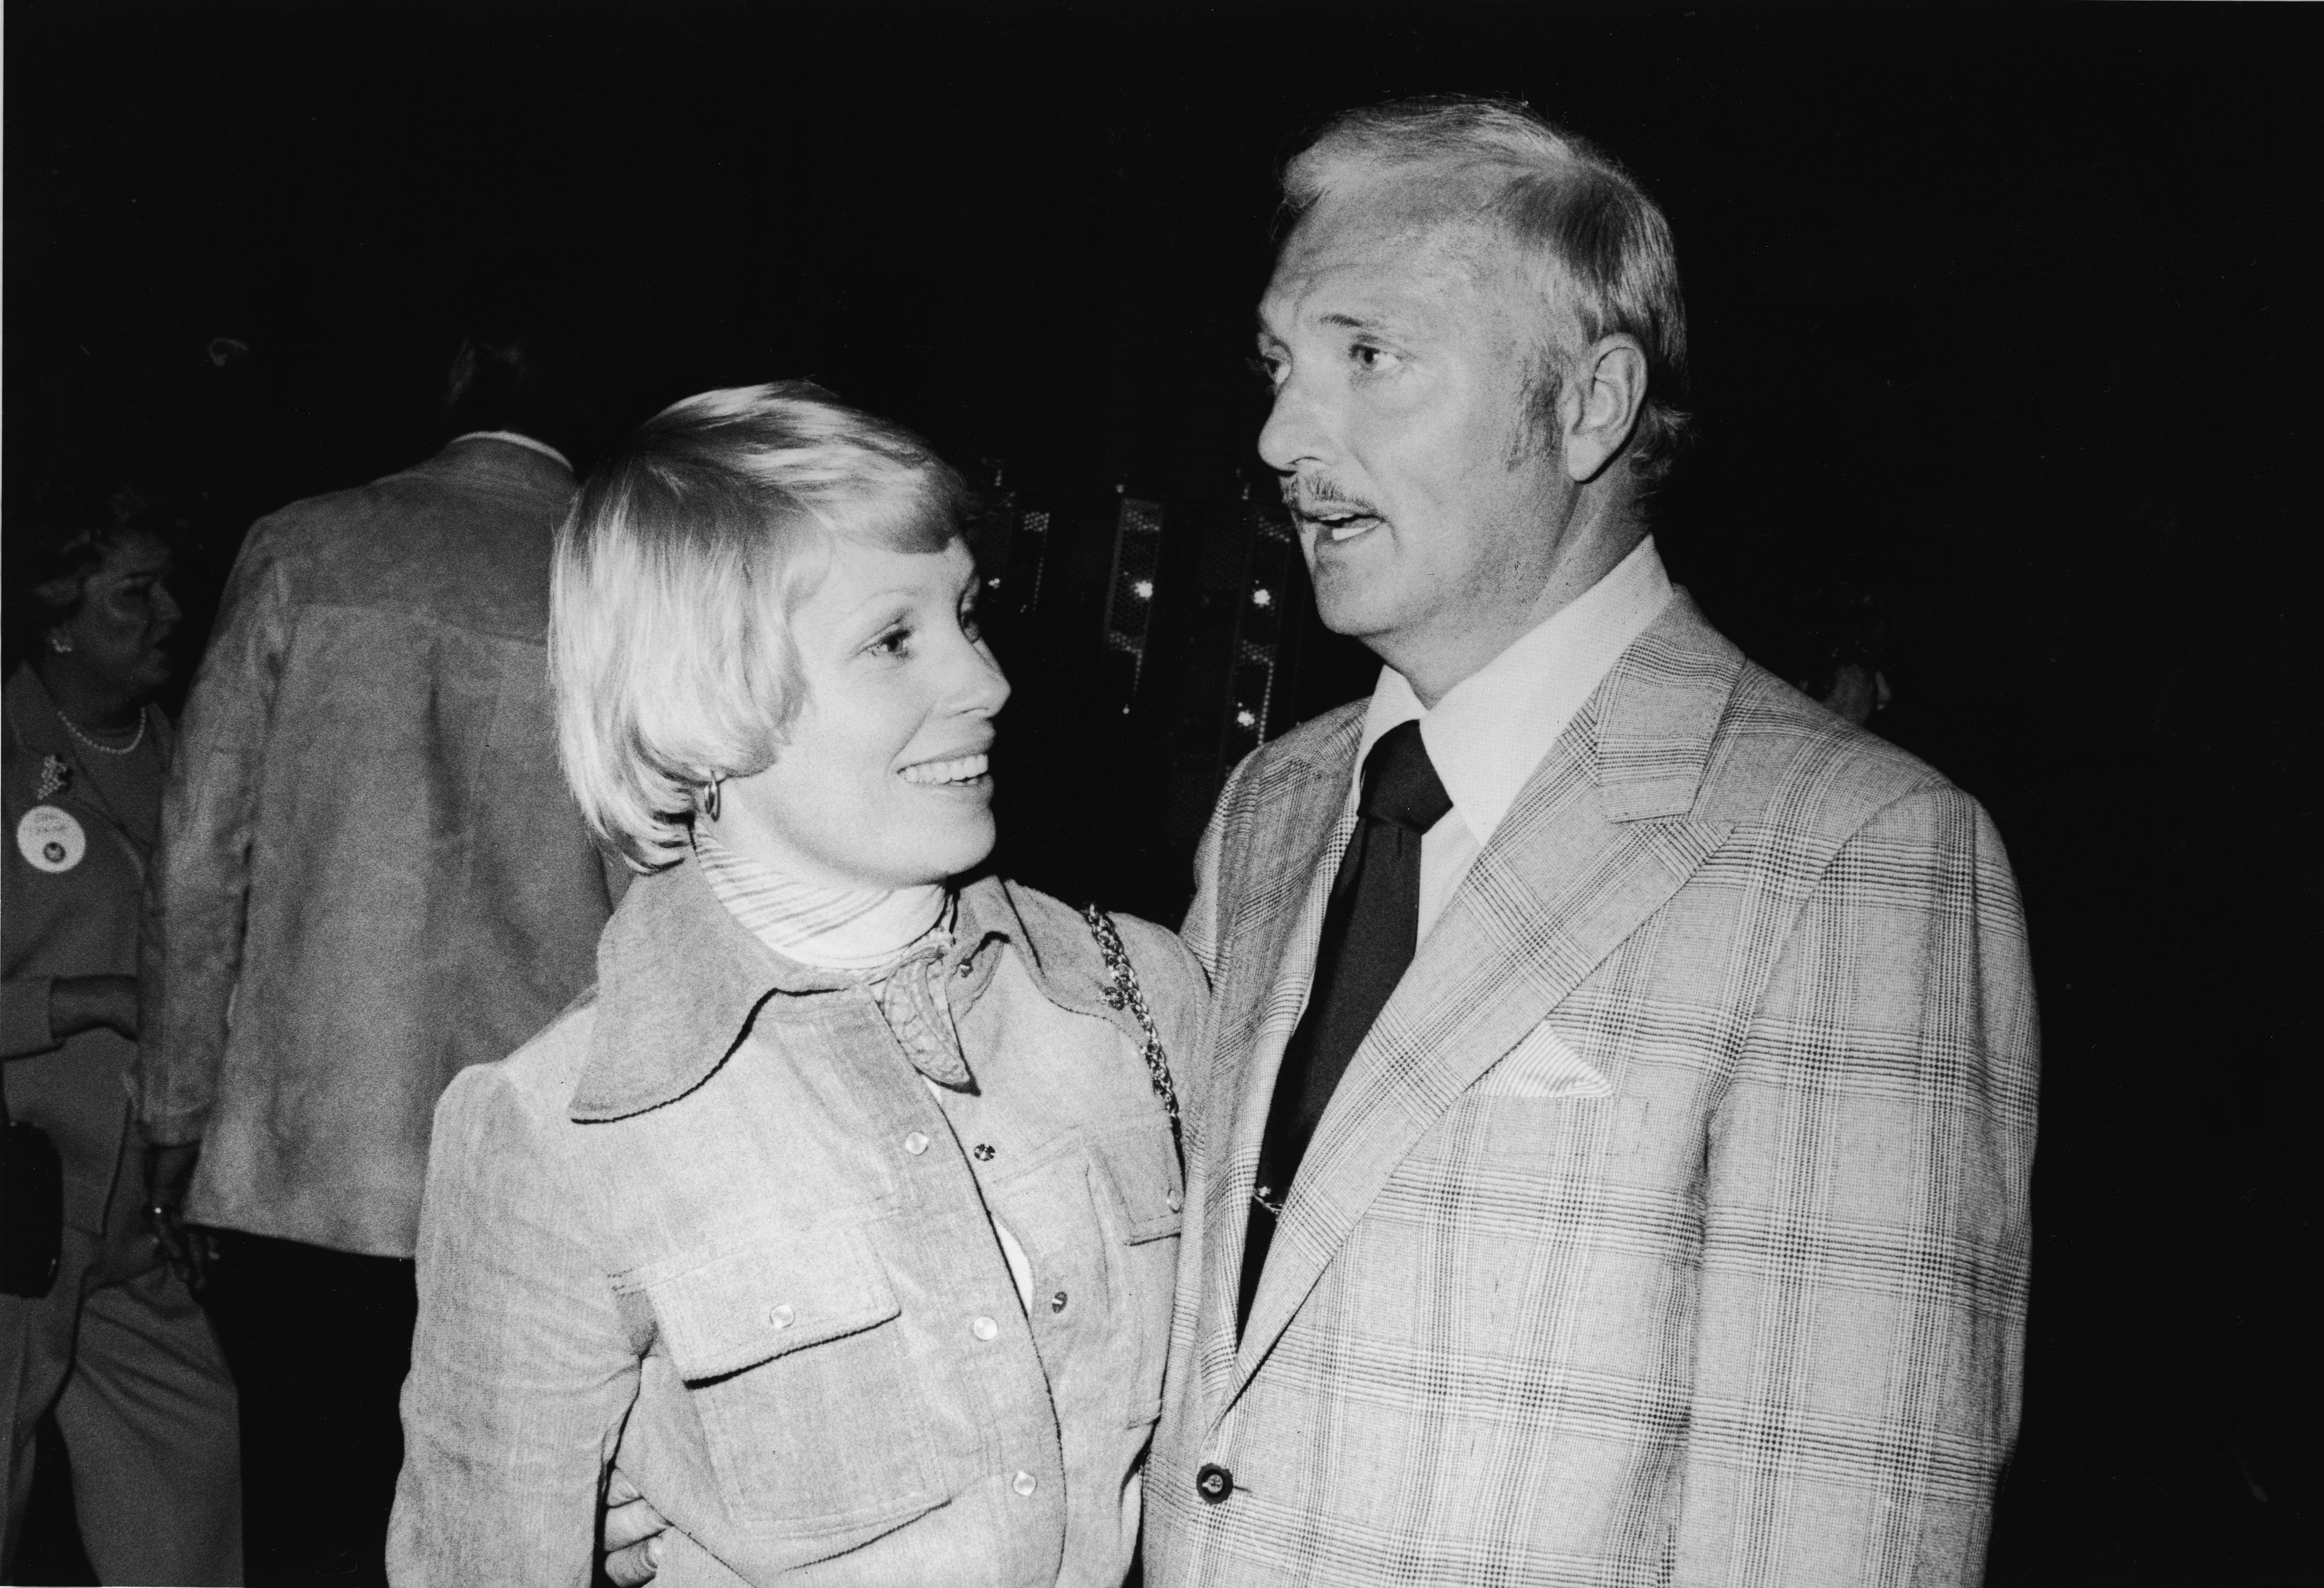 Image Source: Getty Images/American actors Joyce Bulifant and Jack Cassidy (1927 - 1971) attend the opening of the Motorama Museum in Hollywood, California, March 1975